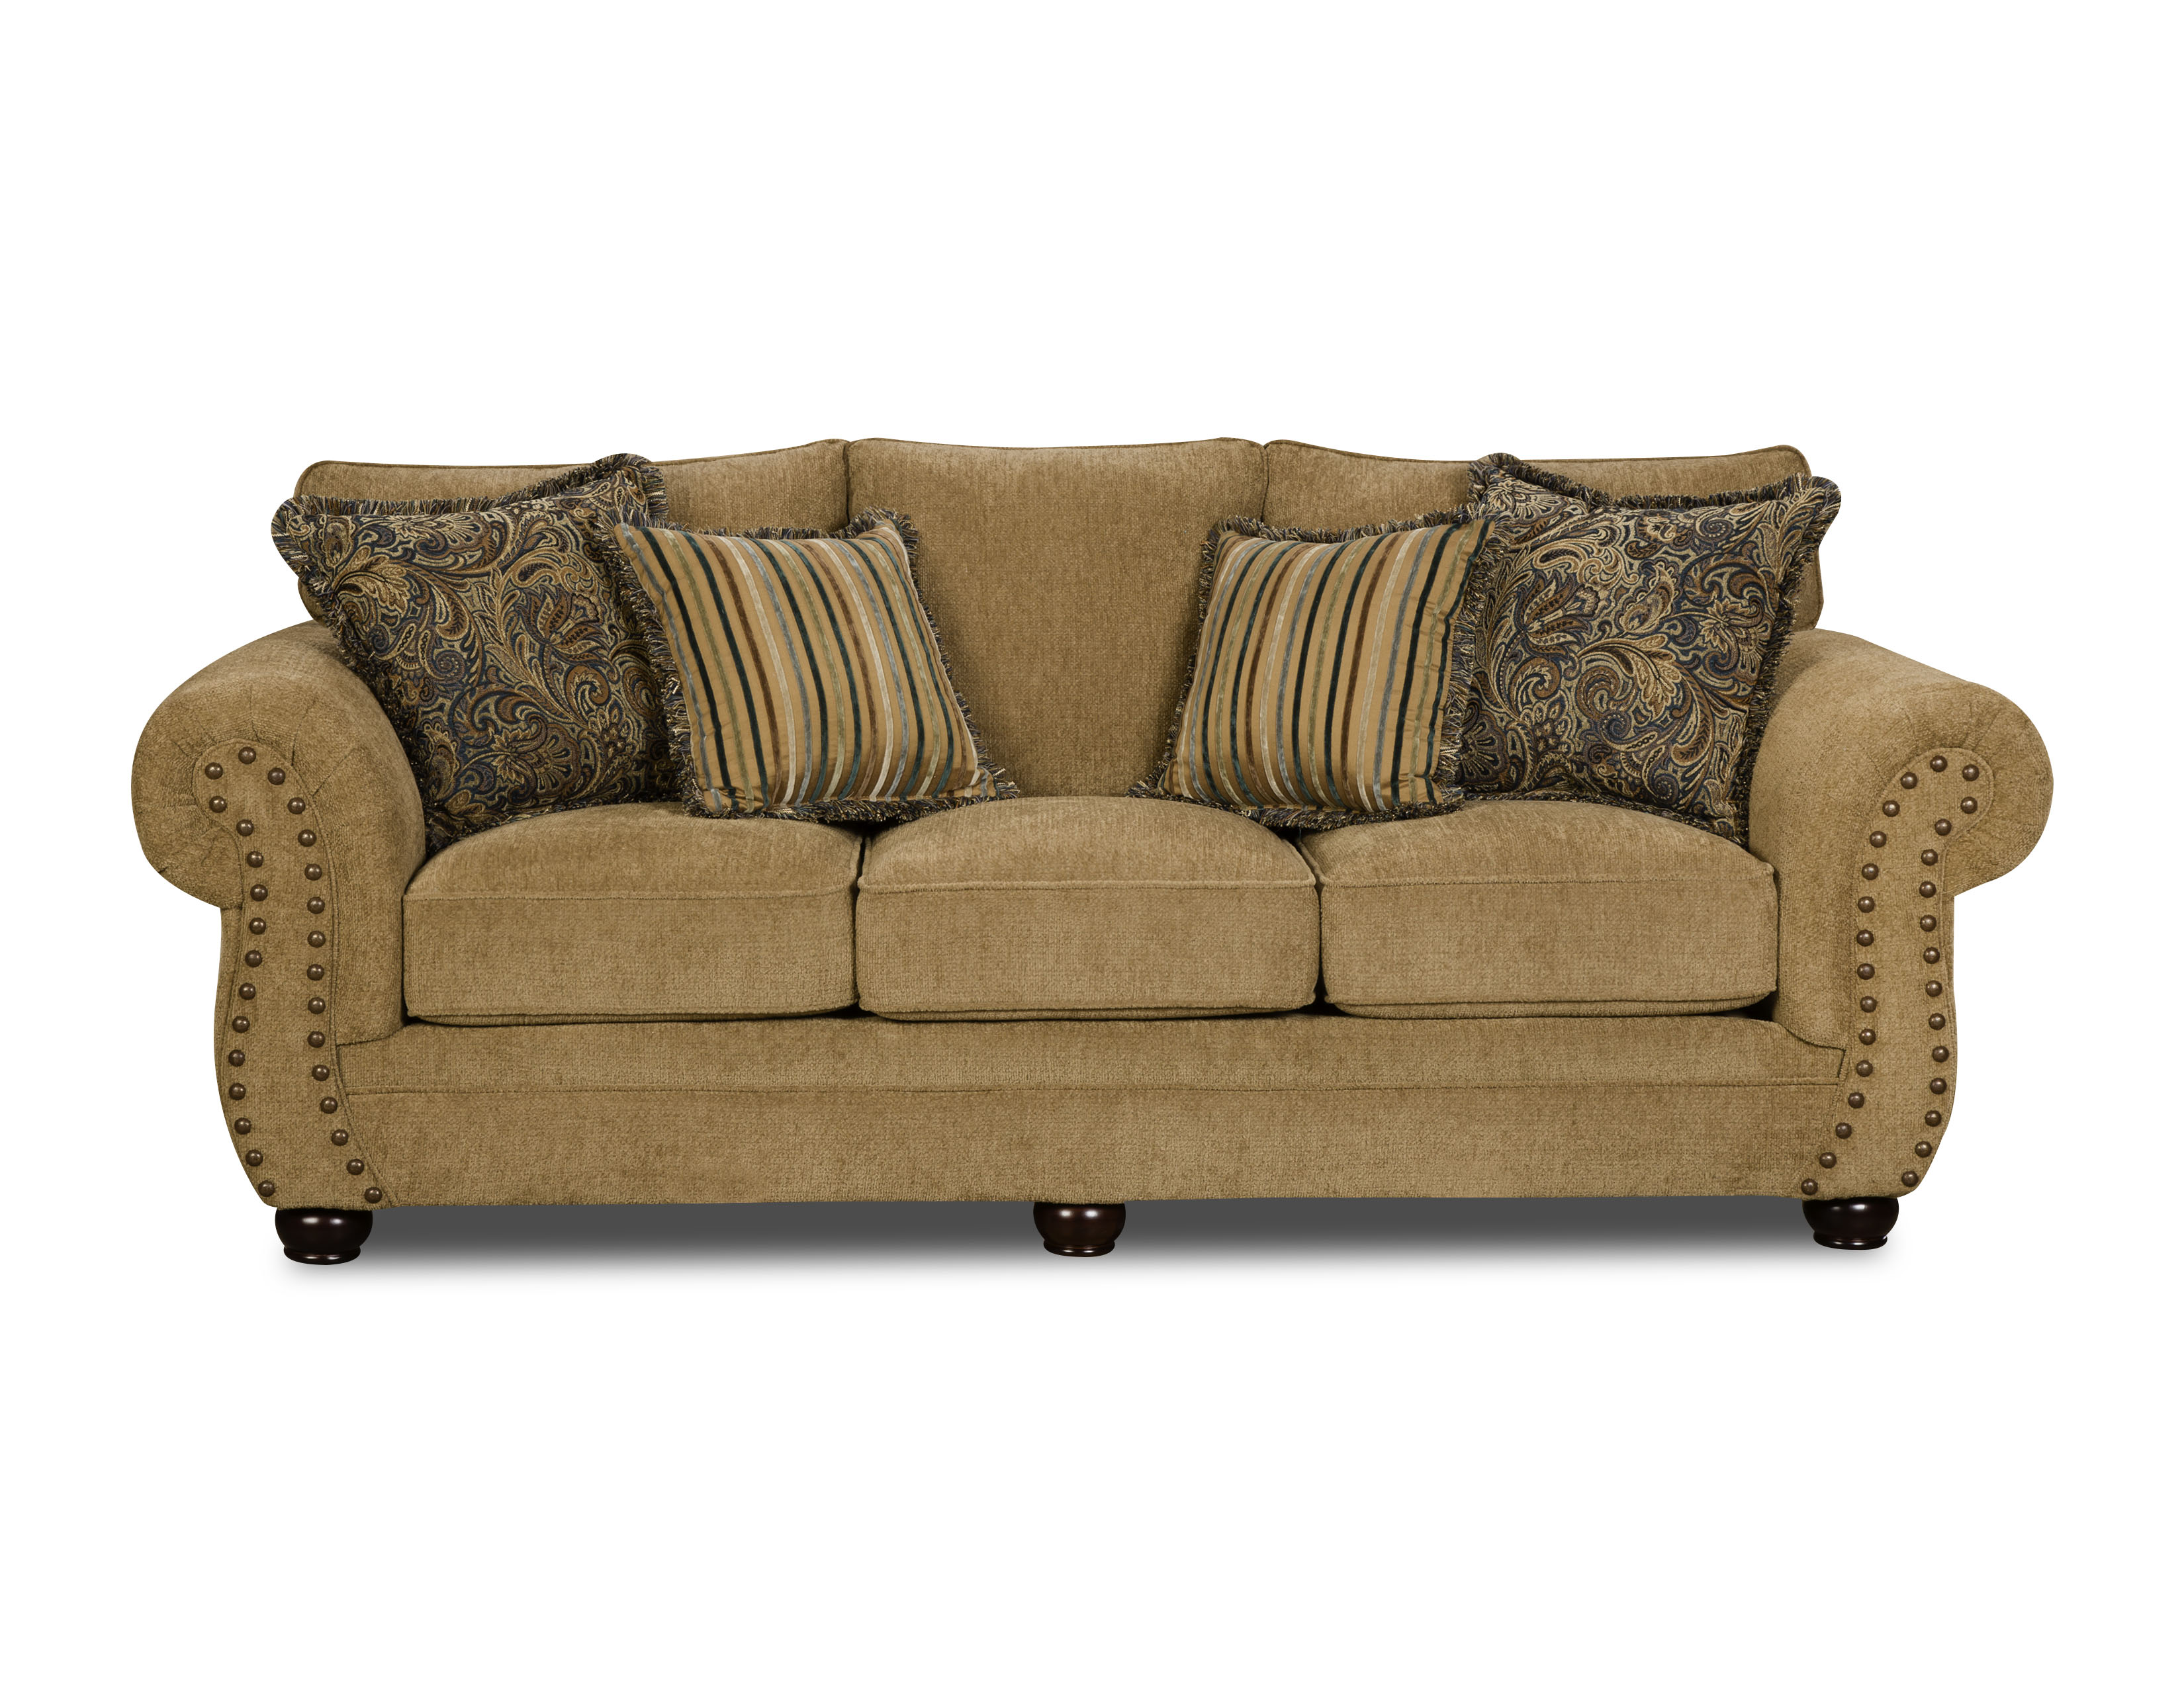 High Quality Simmons Upholstery Simmons Upholstery Victoria Sofa   Antique